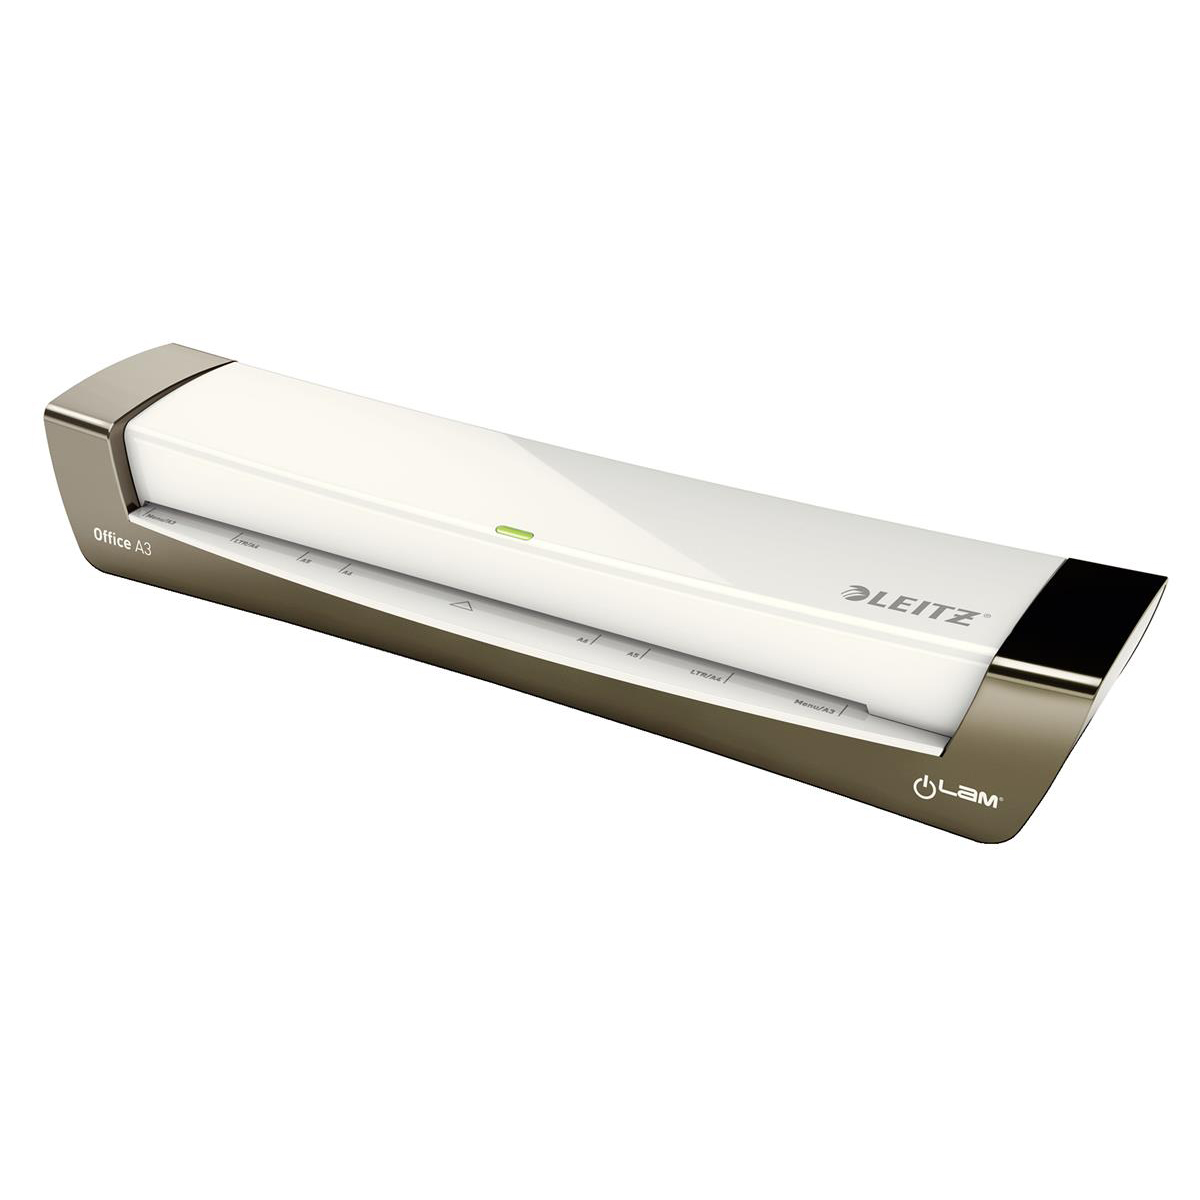 Leitz OfficePro Shredder Super Micro Cut P-6 [FREE Leitz iLam Office Laminator A3 Silver] Jan-Mar 20